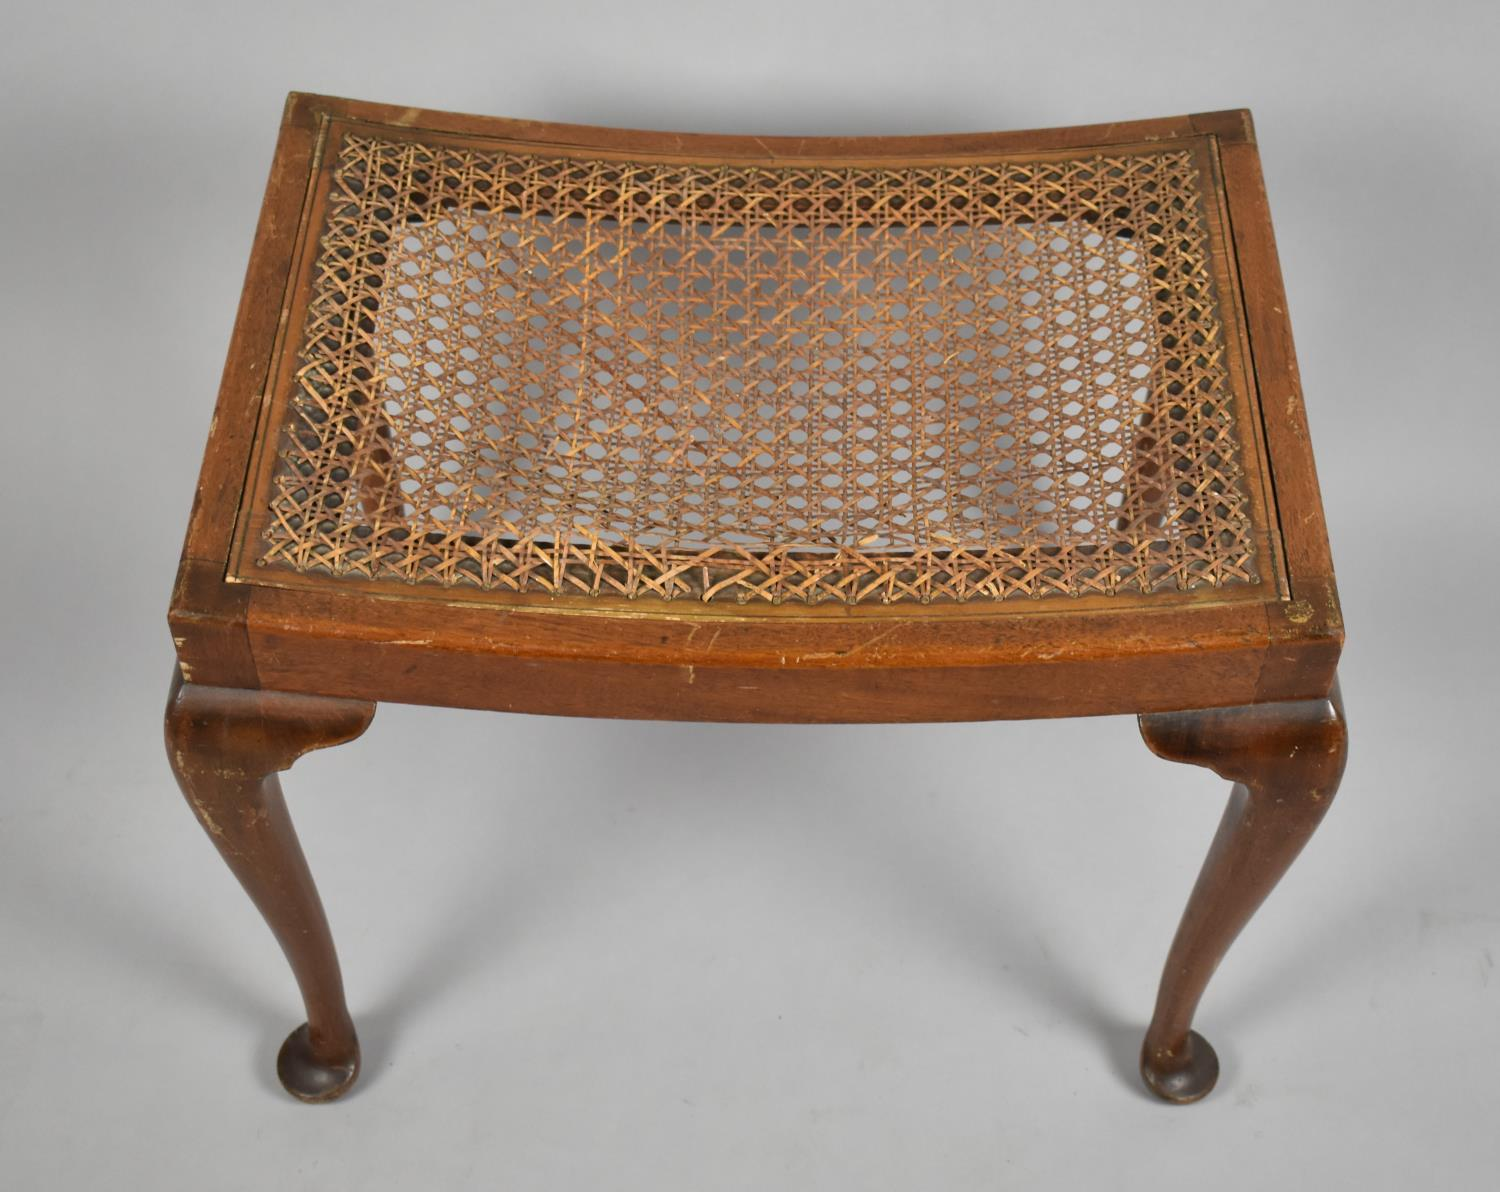 A Mid 20th Century Walnut Framed Rectangular Stool on Cabriole Supports, Requires Recaning, 56cm - Image 2 of 4